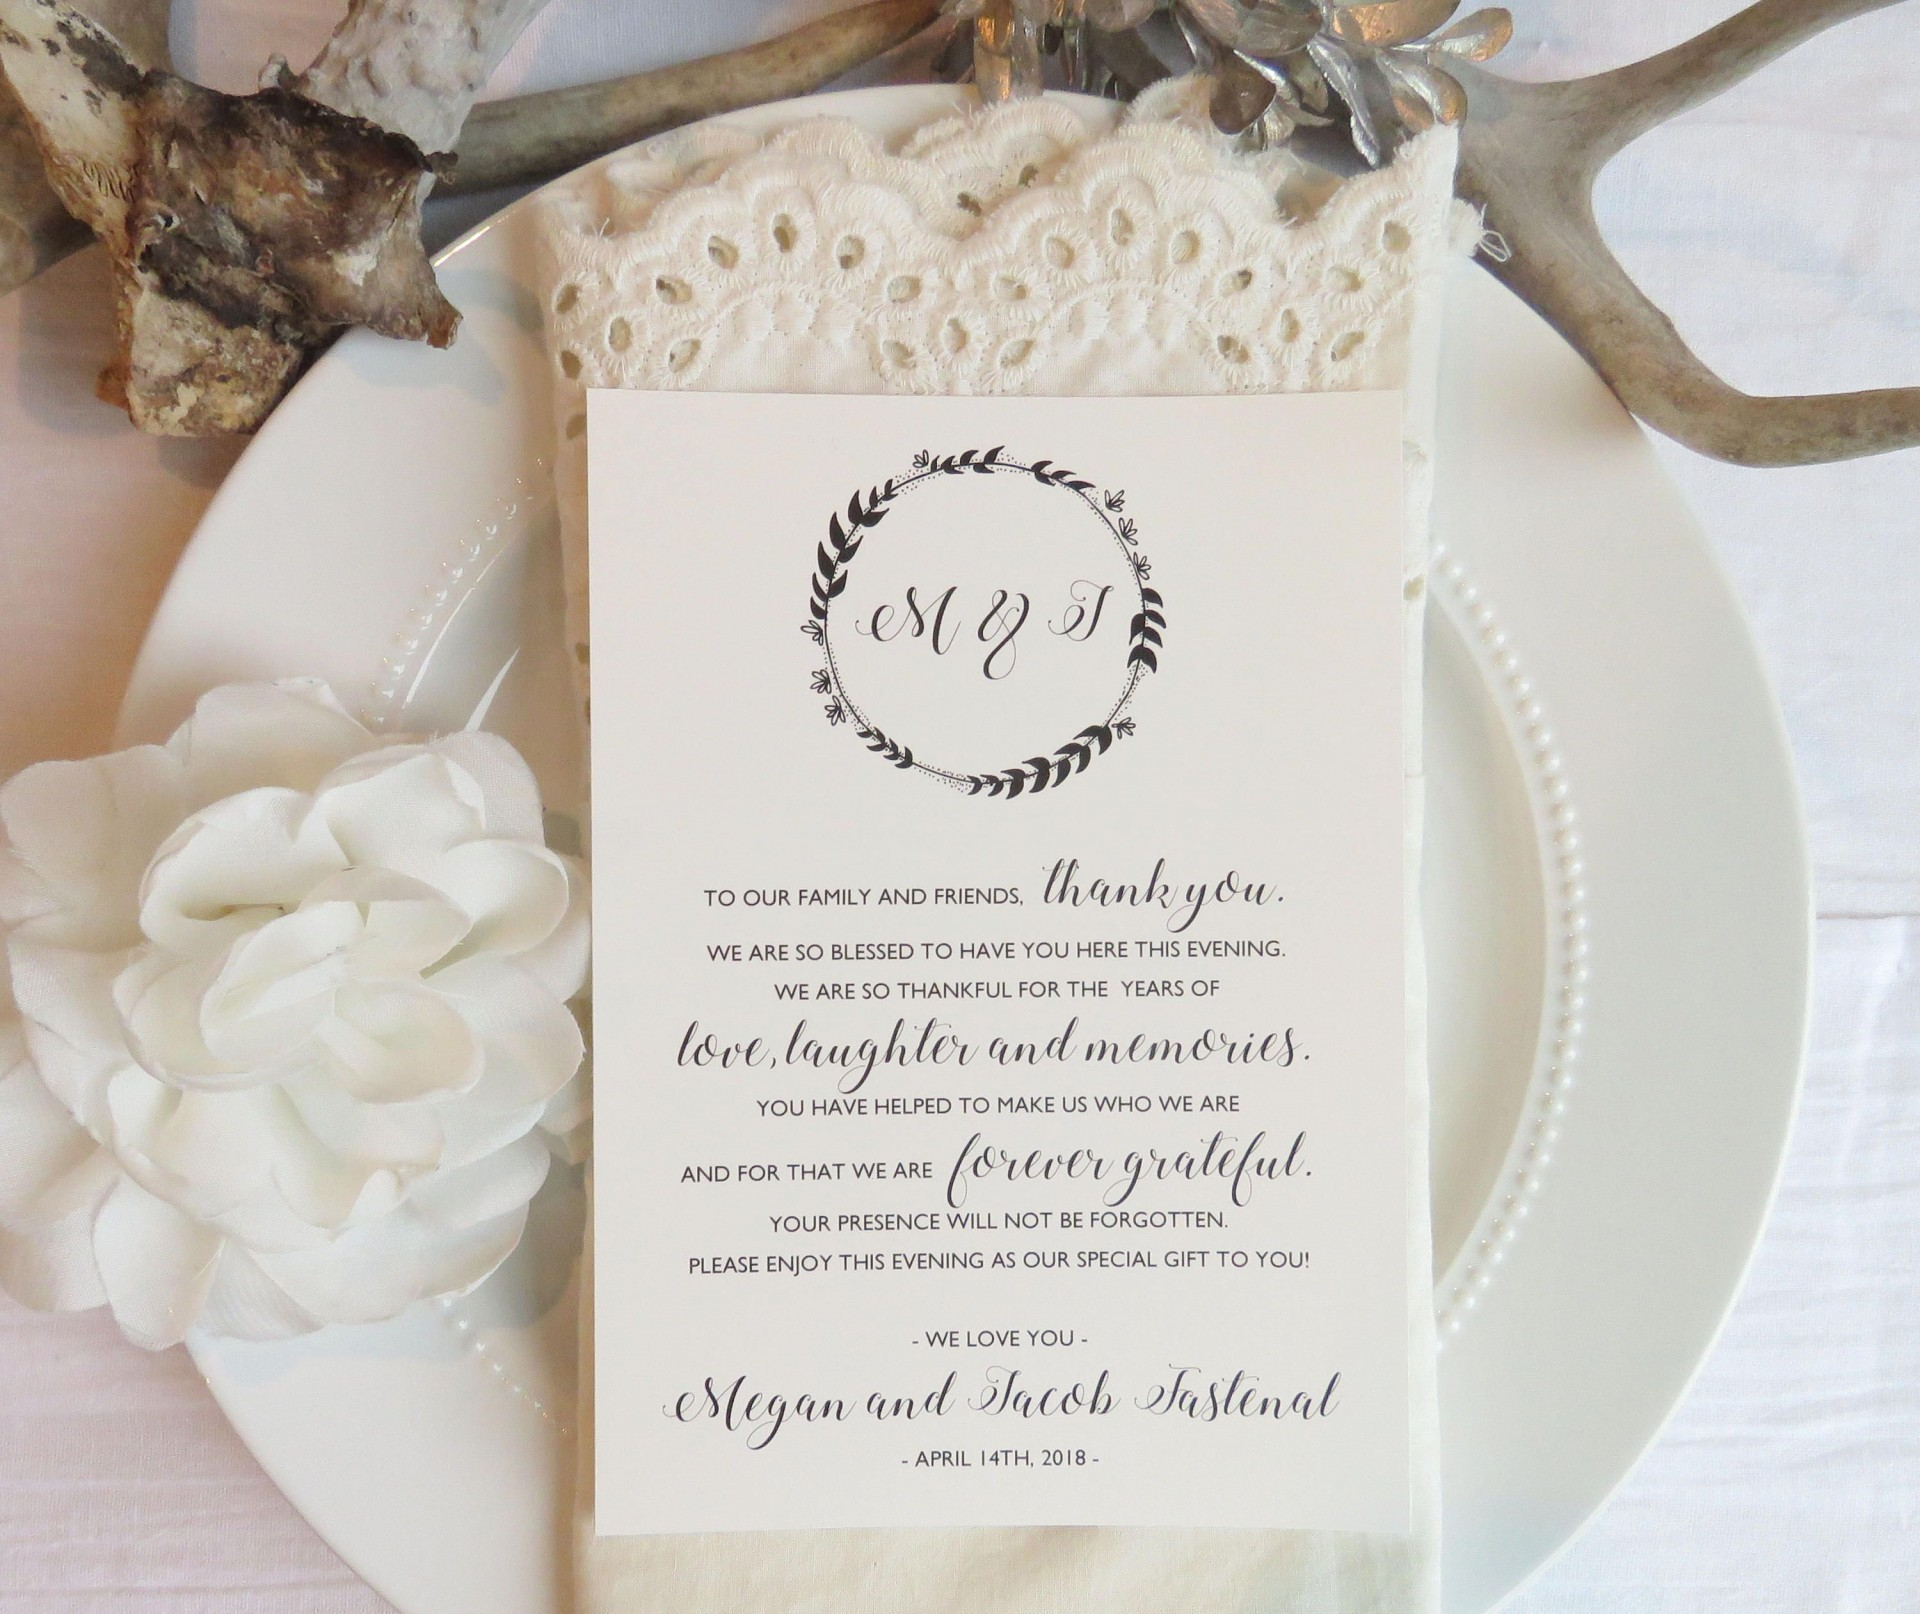 002 Dreaded Thank You Note For Wedding Guest Template High Def  Card1920